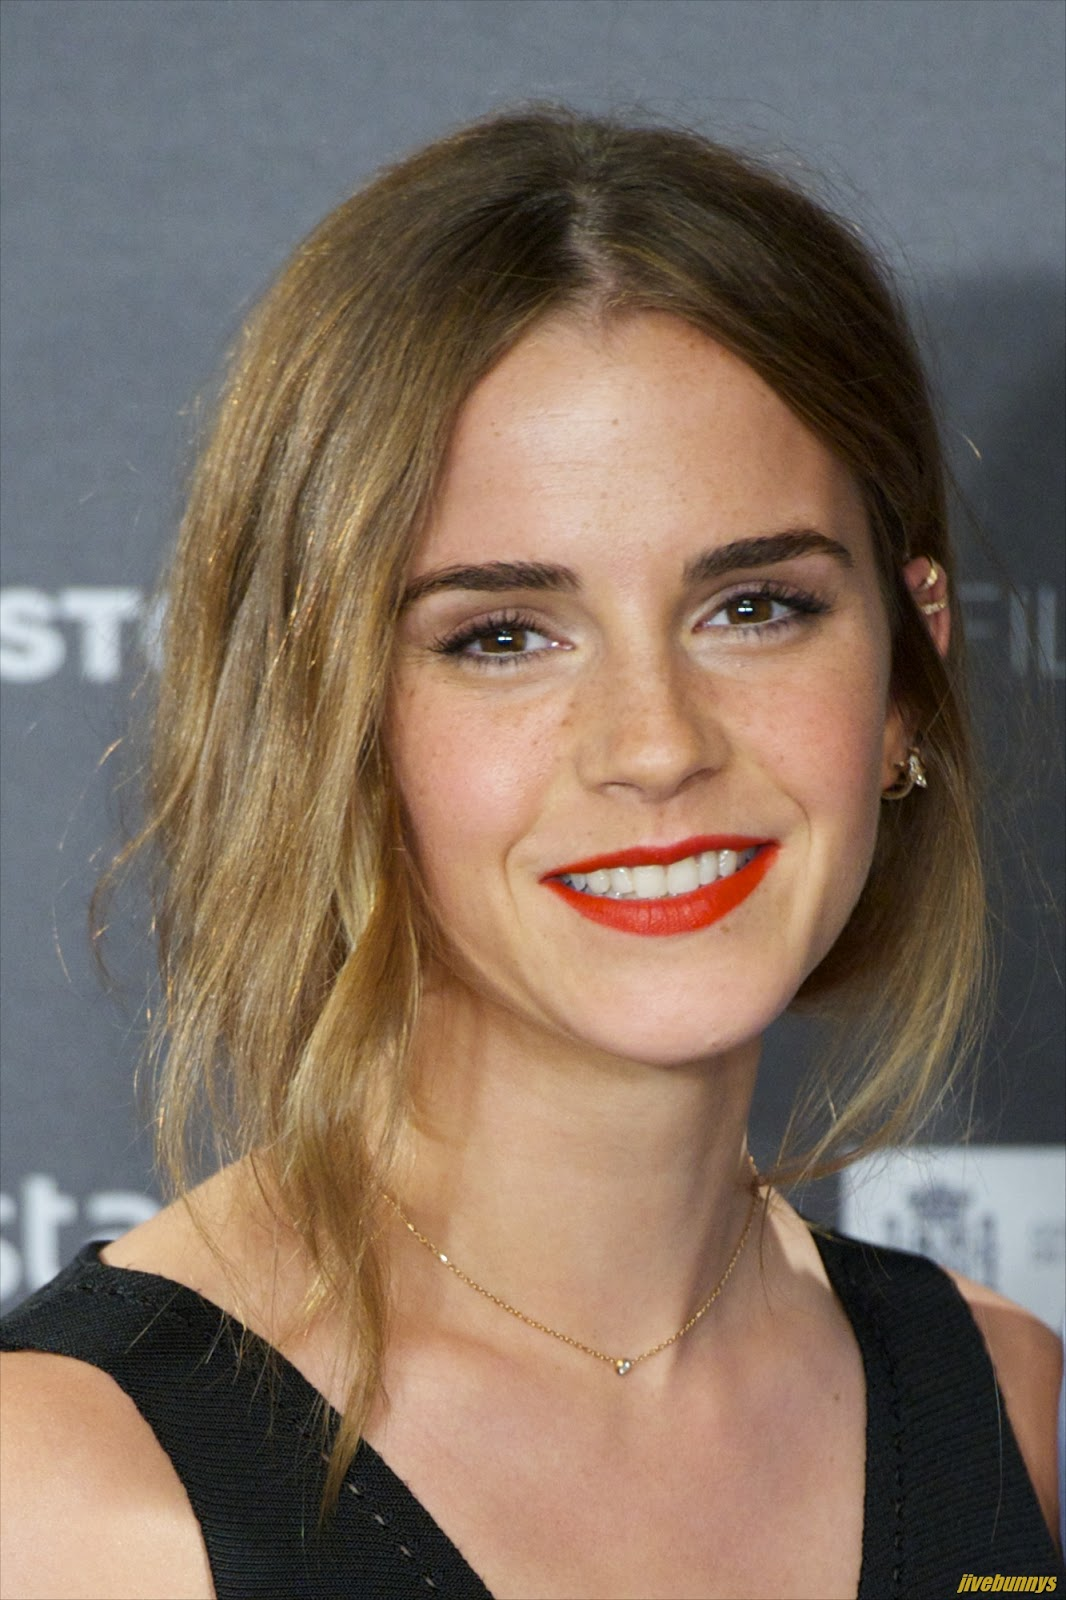 Emma Watson HQ Photos Gallery 14: http://www.jivebunnys.com/2016/03/emma-watson-hq-photos-gallery-14.html?m=1